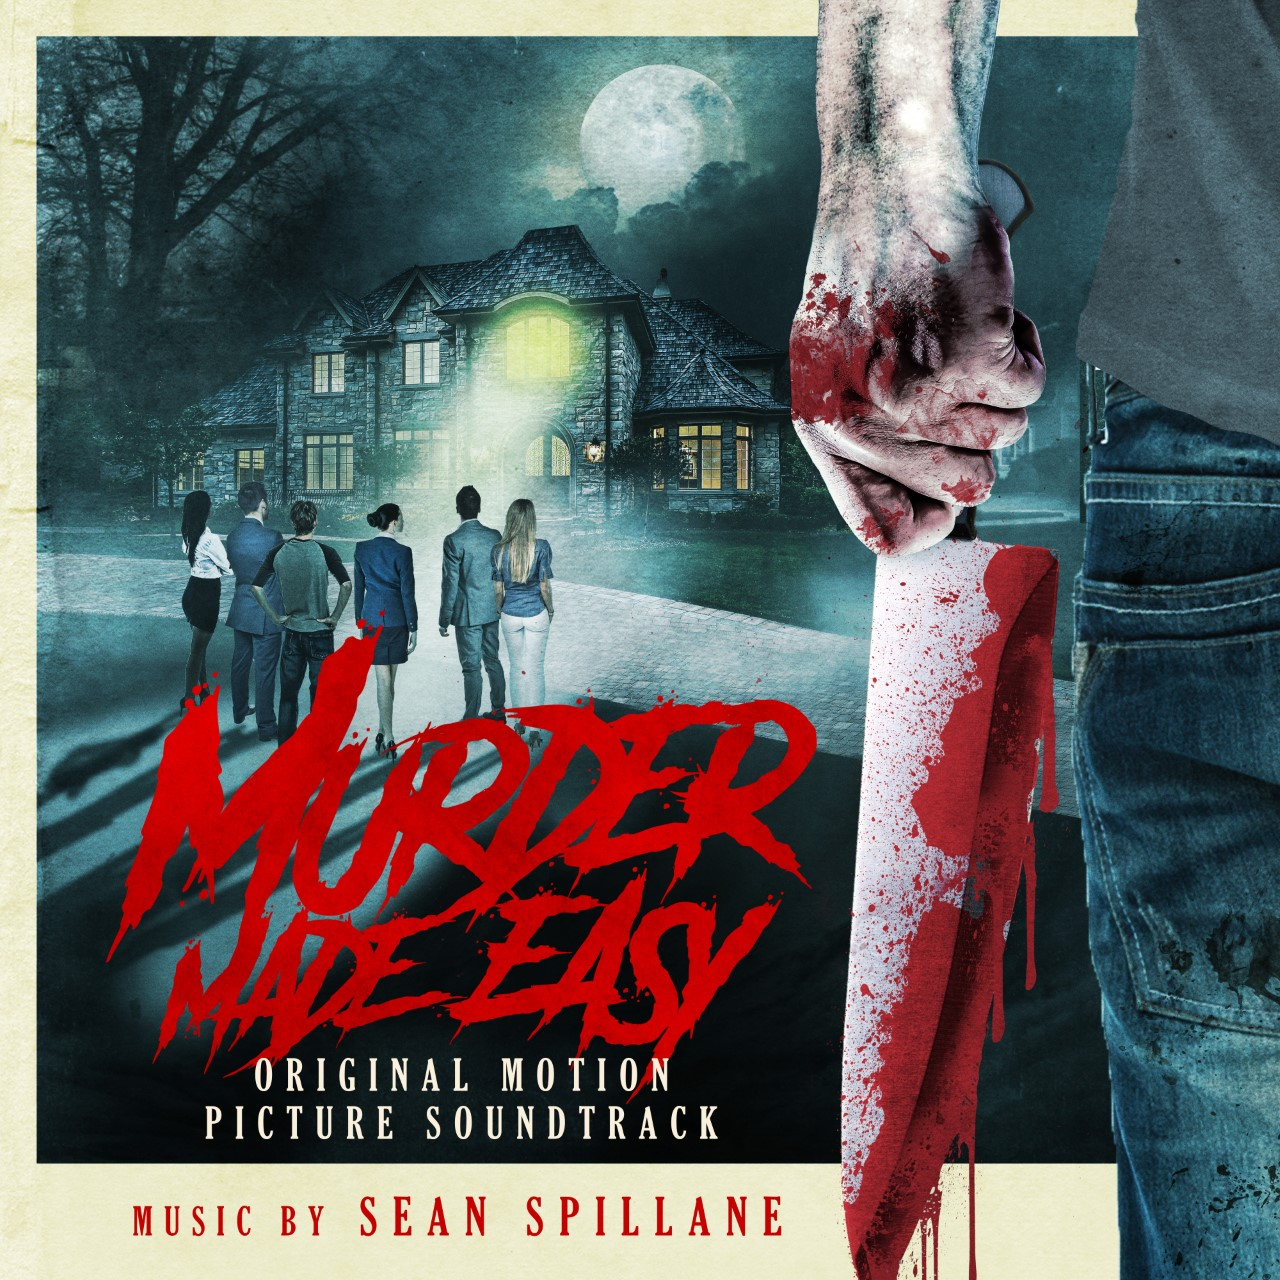 'MURDER MADE EASY' ORIGINAL MOTION PICTURE SOUNDTRACK AVAILABLE DIGITALLY